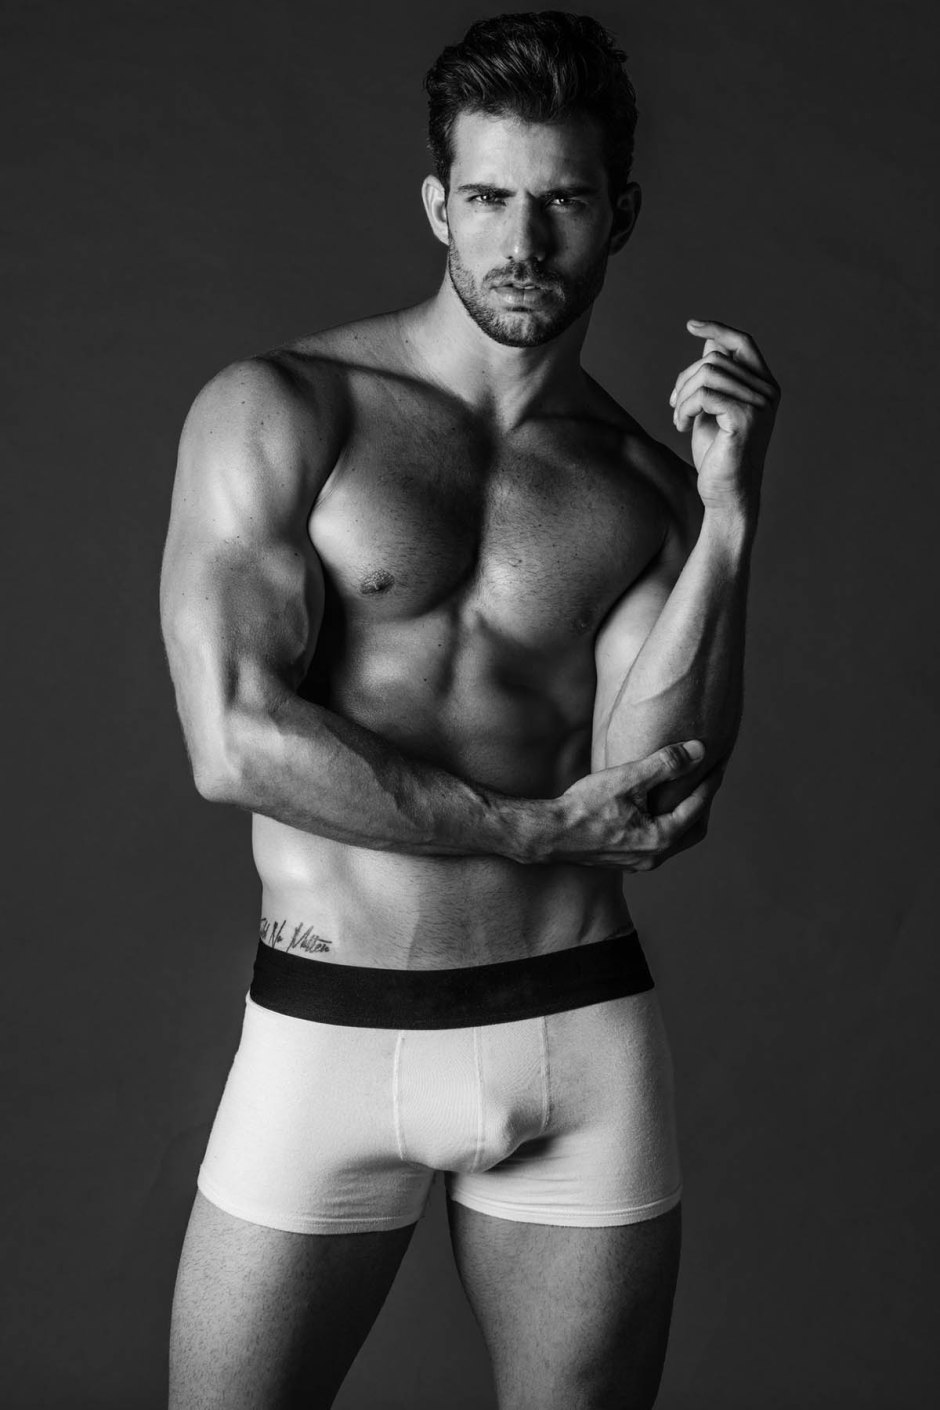 Hugo Tenorio by Wong Sim for Brazilian Male Model_004